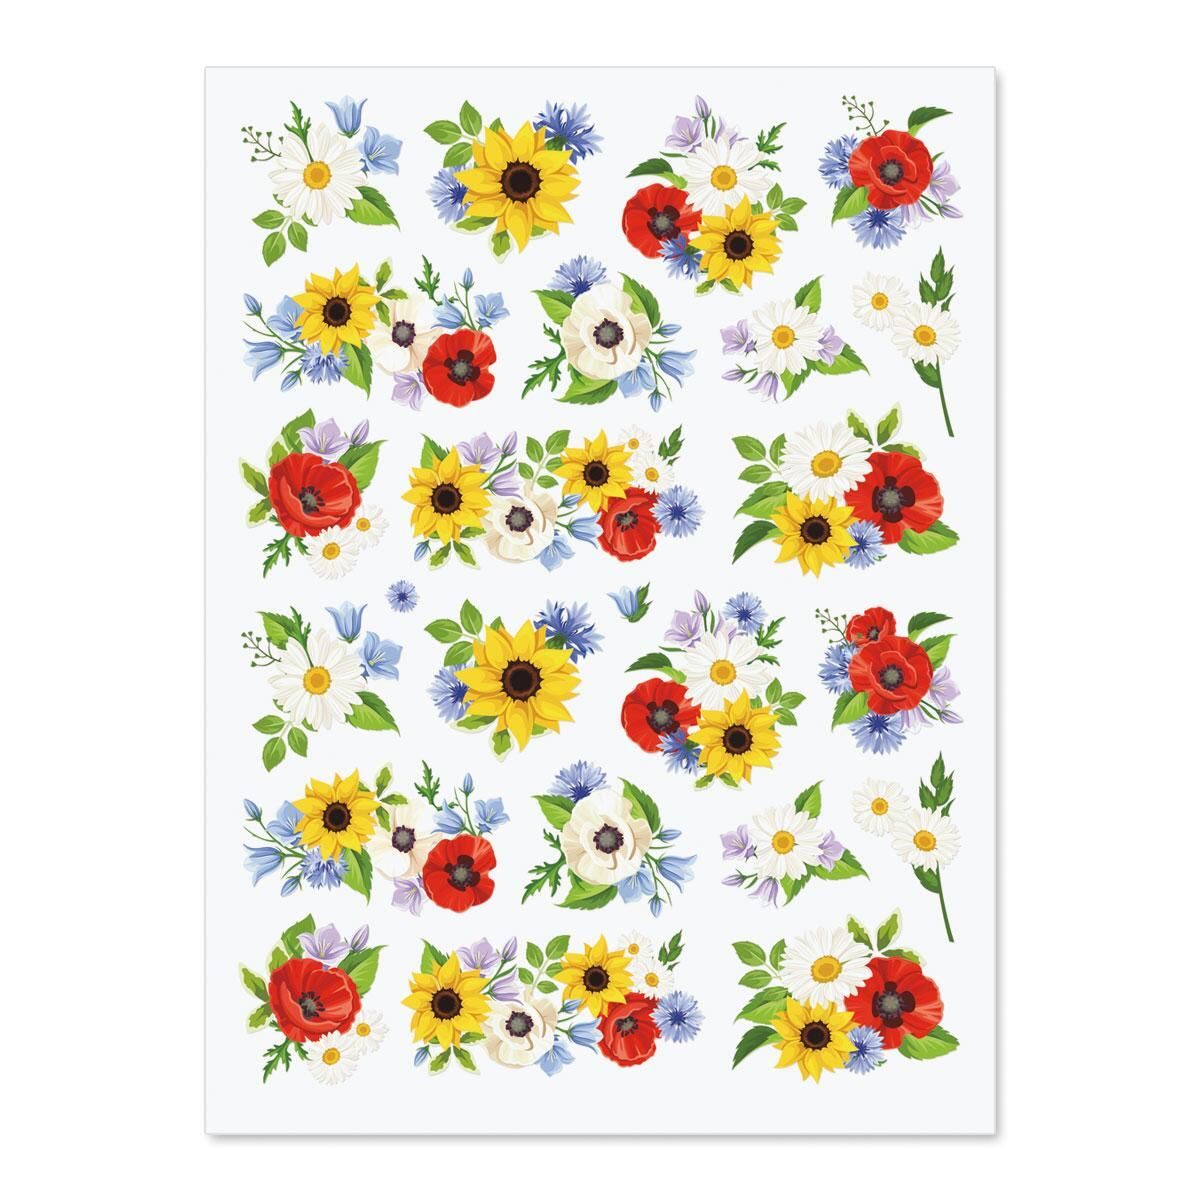 Poppies, Sunflowers & Daisies Stickers - BOGO